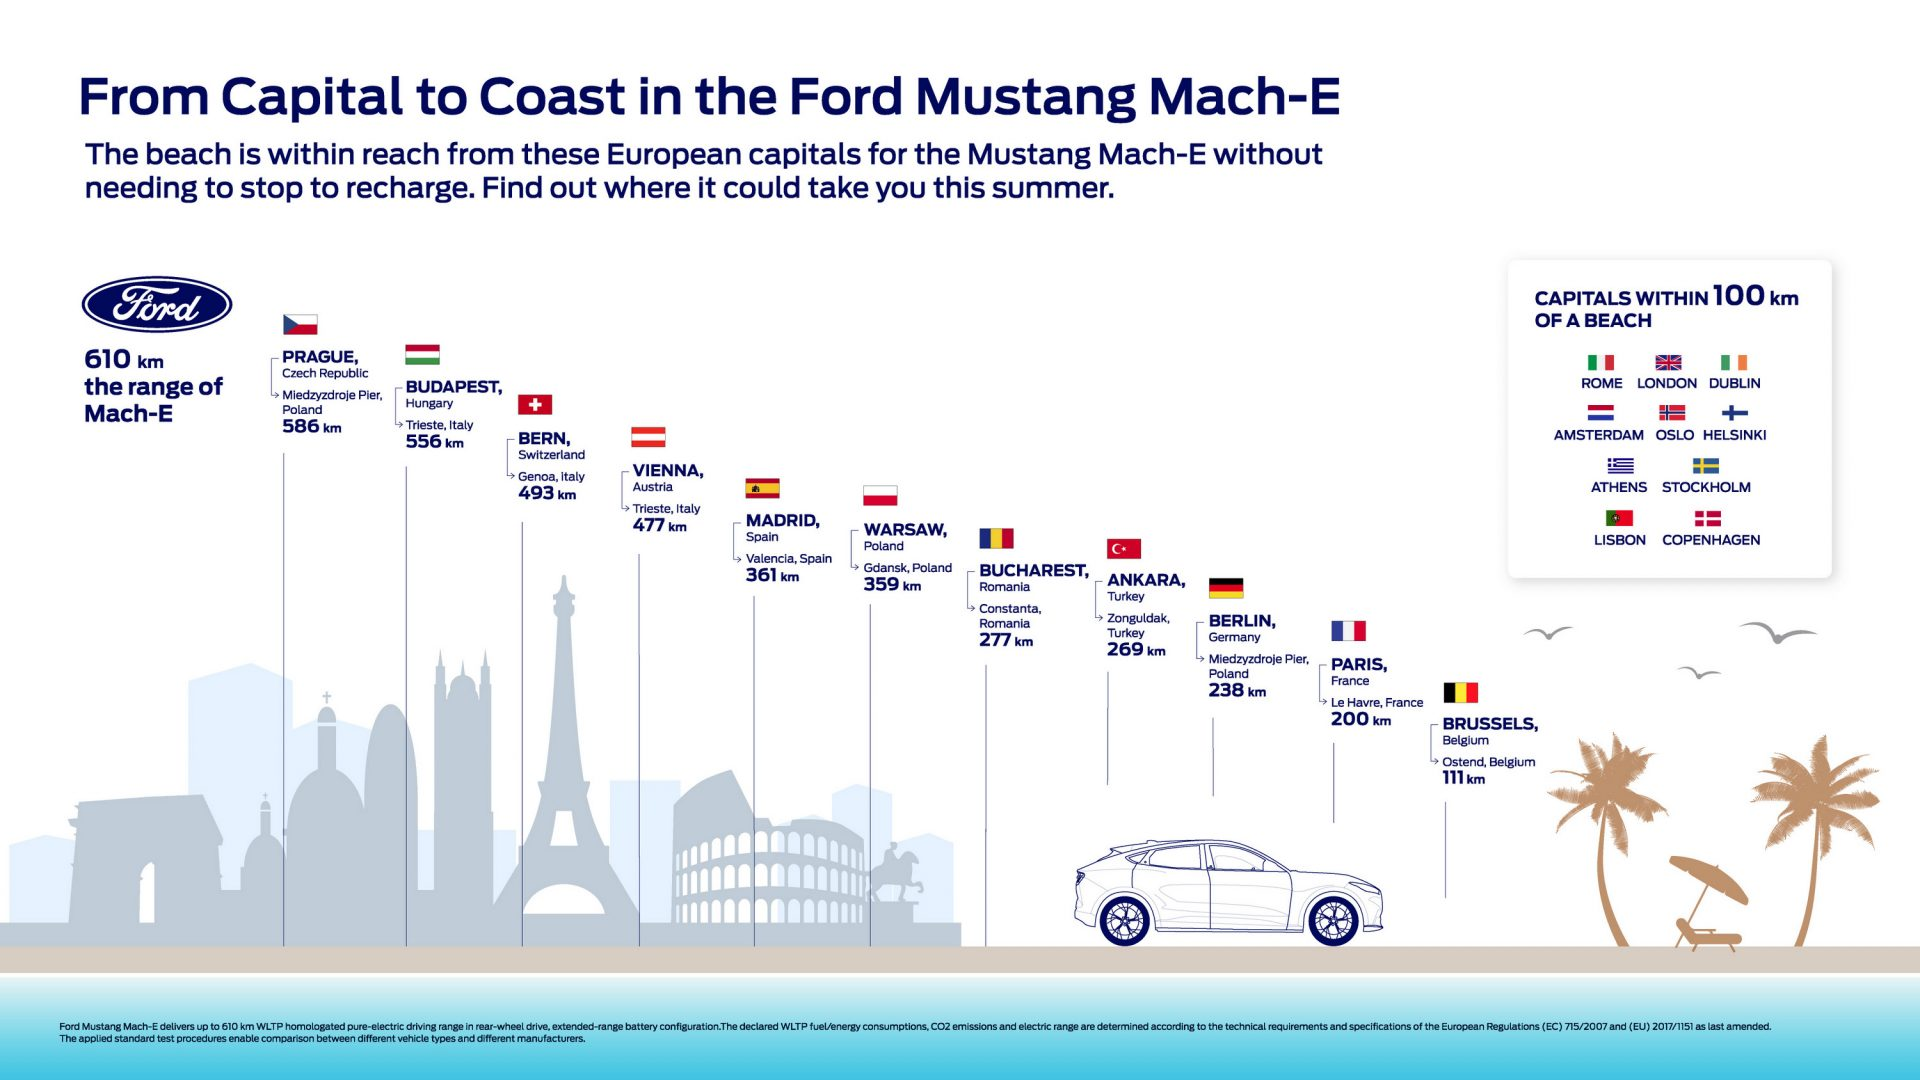 Mach E beach Infographic H Ford Mustang Mach-E υπόσχεται ότι θα σε πάει σε οποιαδήποτε παραλία χωρίς φόρτιση